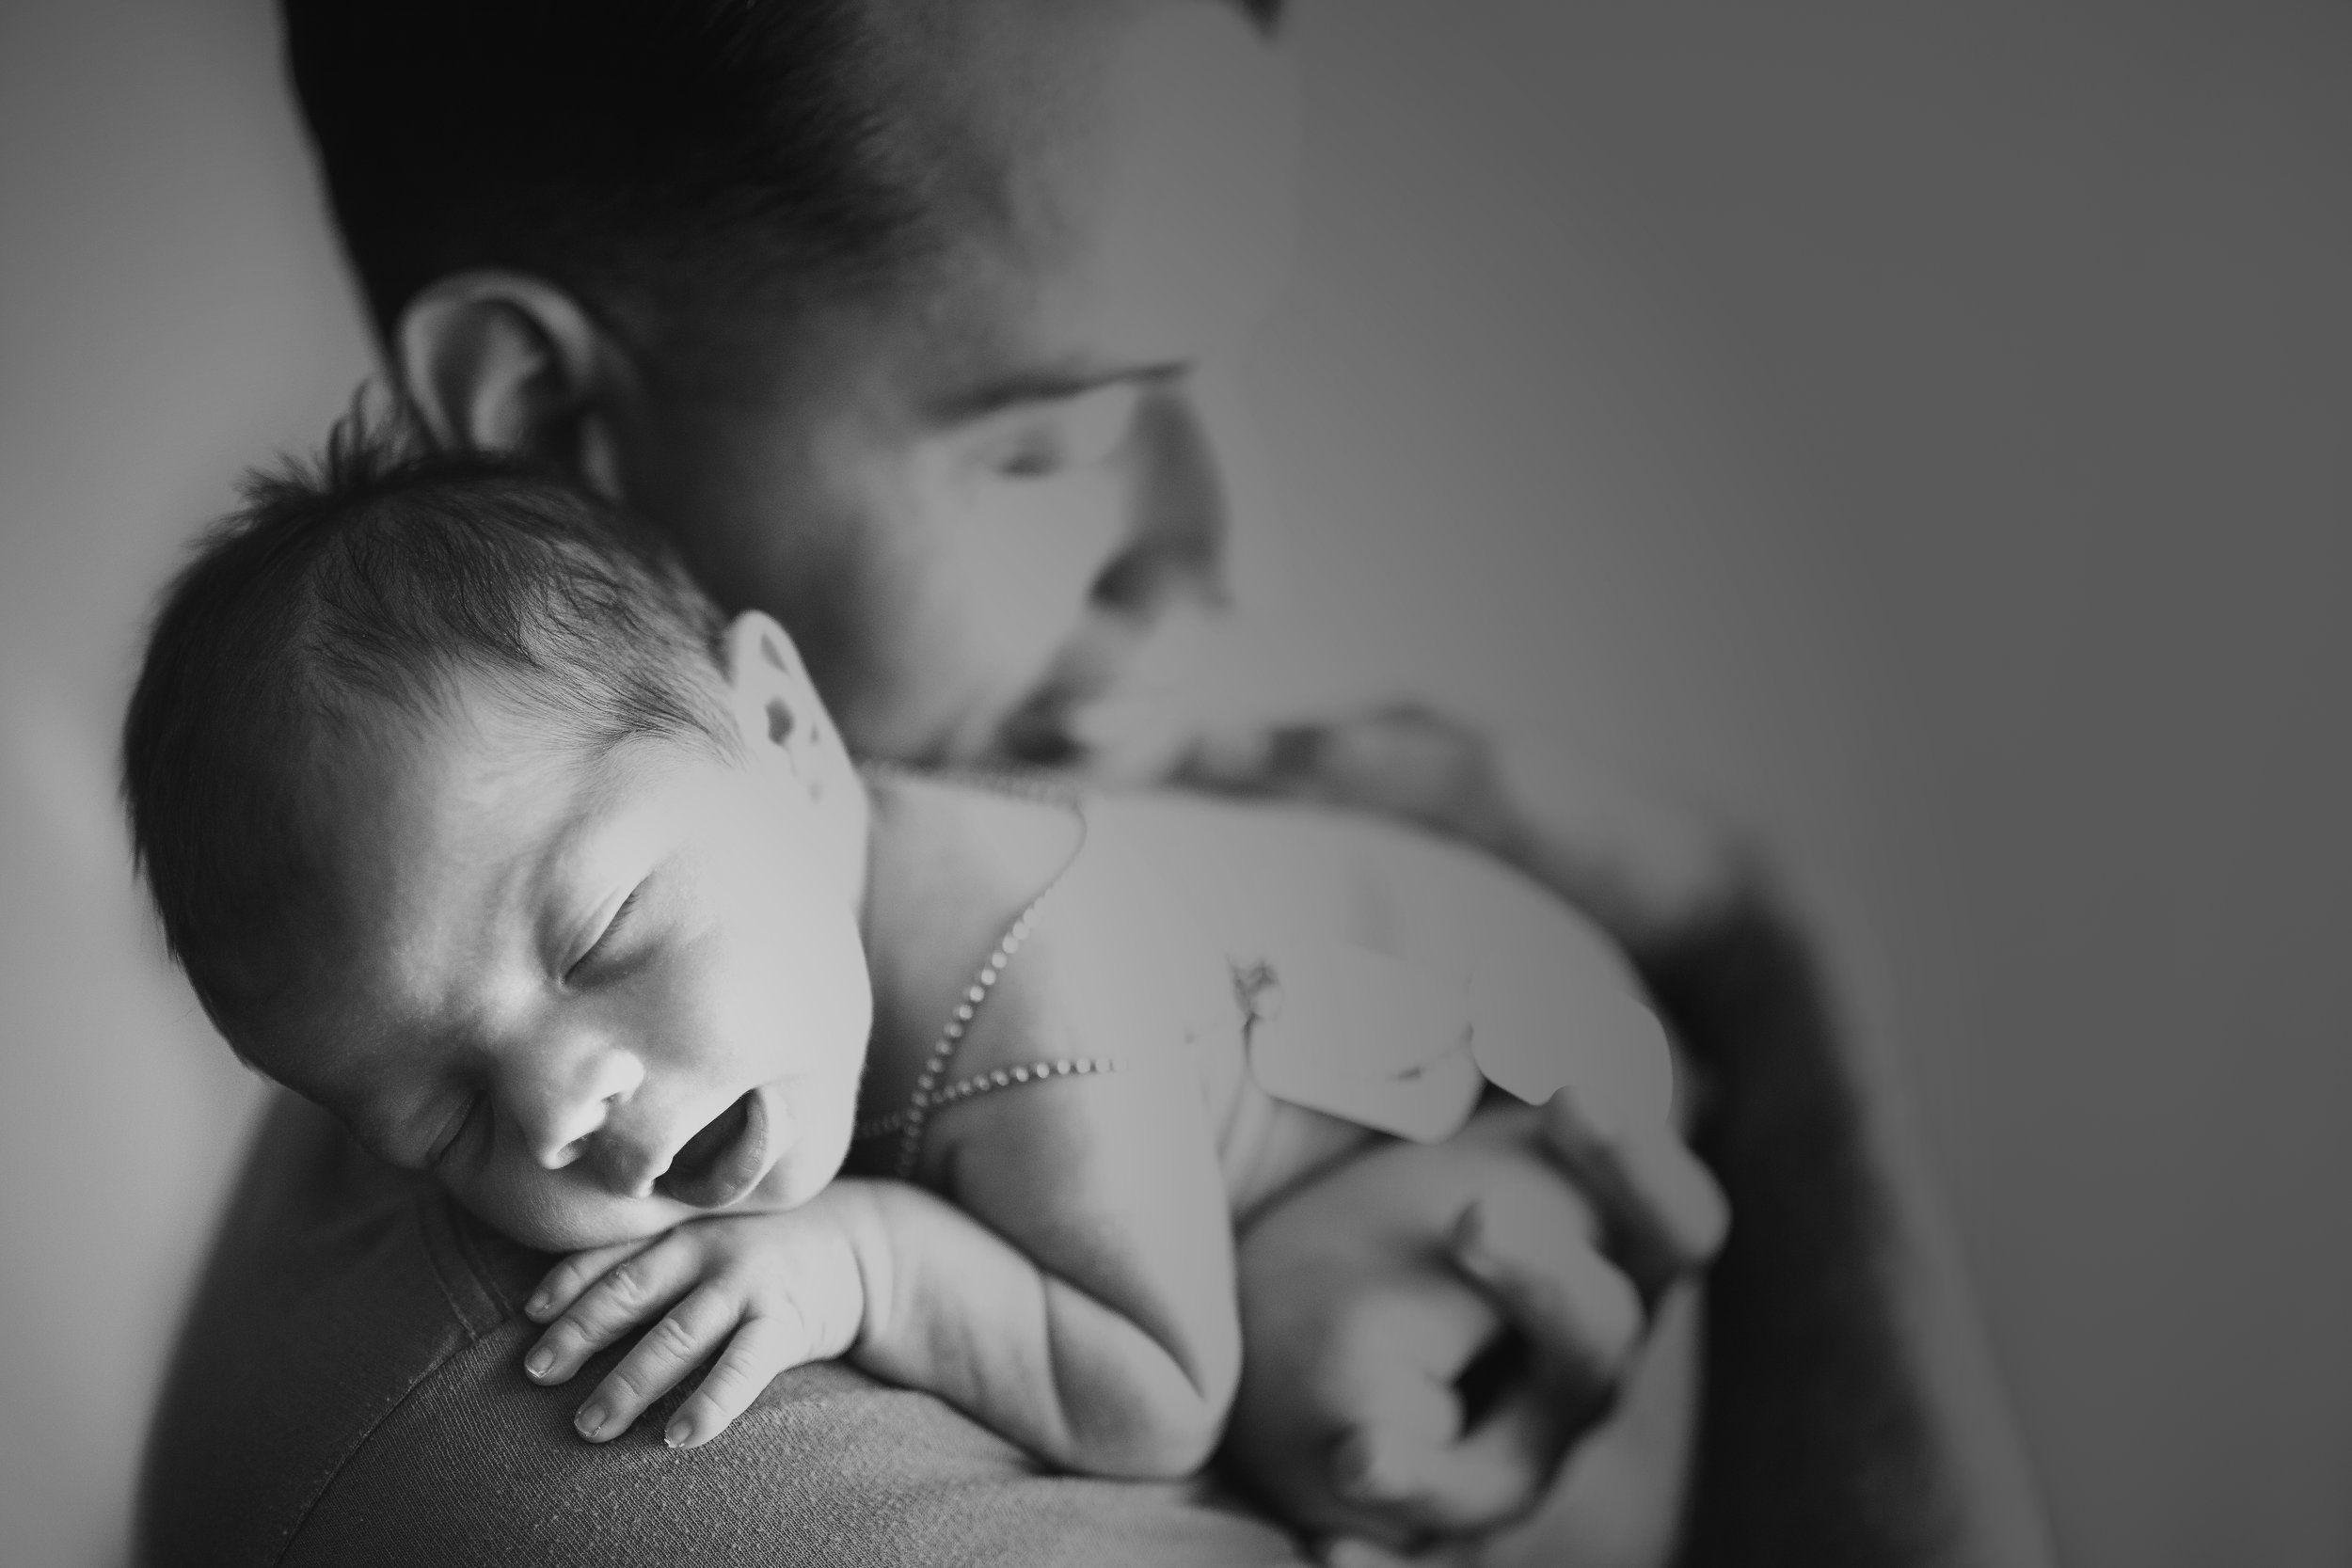 And he lifted him onto his shoulder, the baby naturally moved into this sweet position taking posed photography into the documentary.